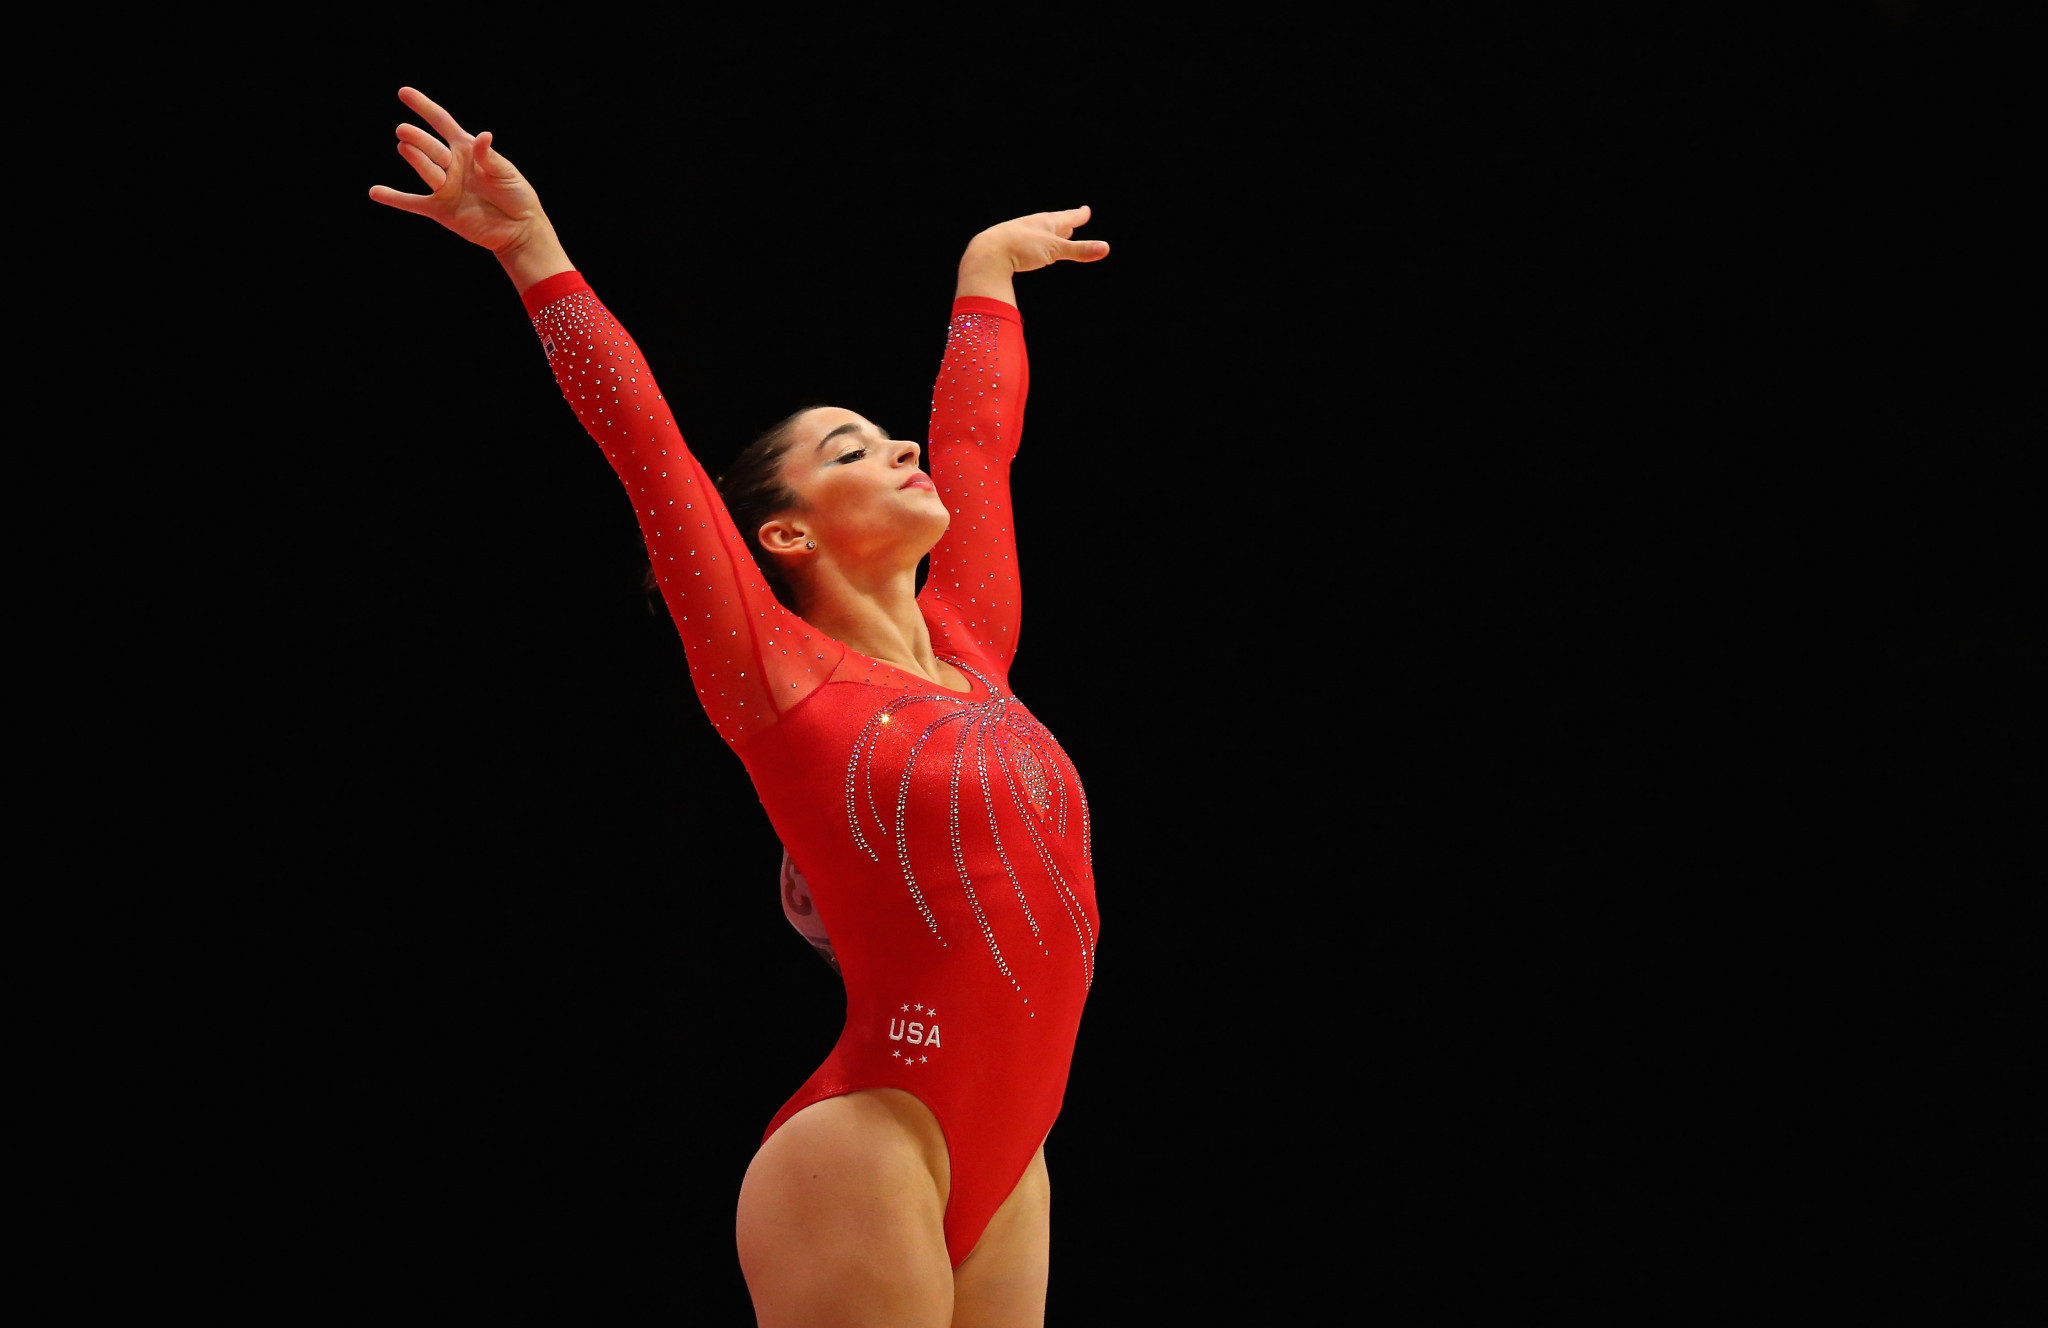 American gymnastics star Raisman confirms she will not compete at Tokyo 2020